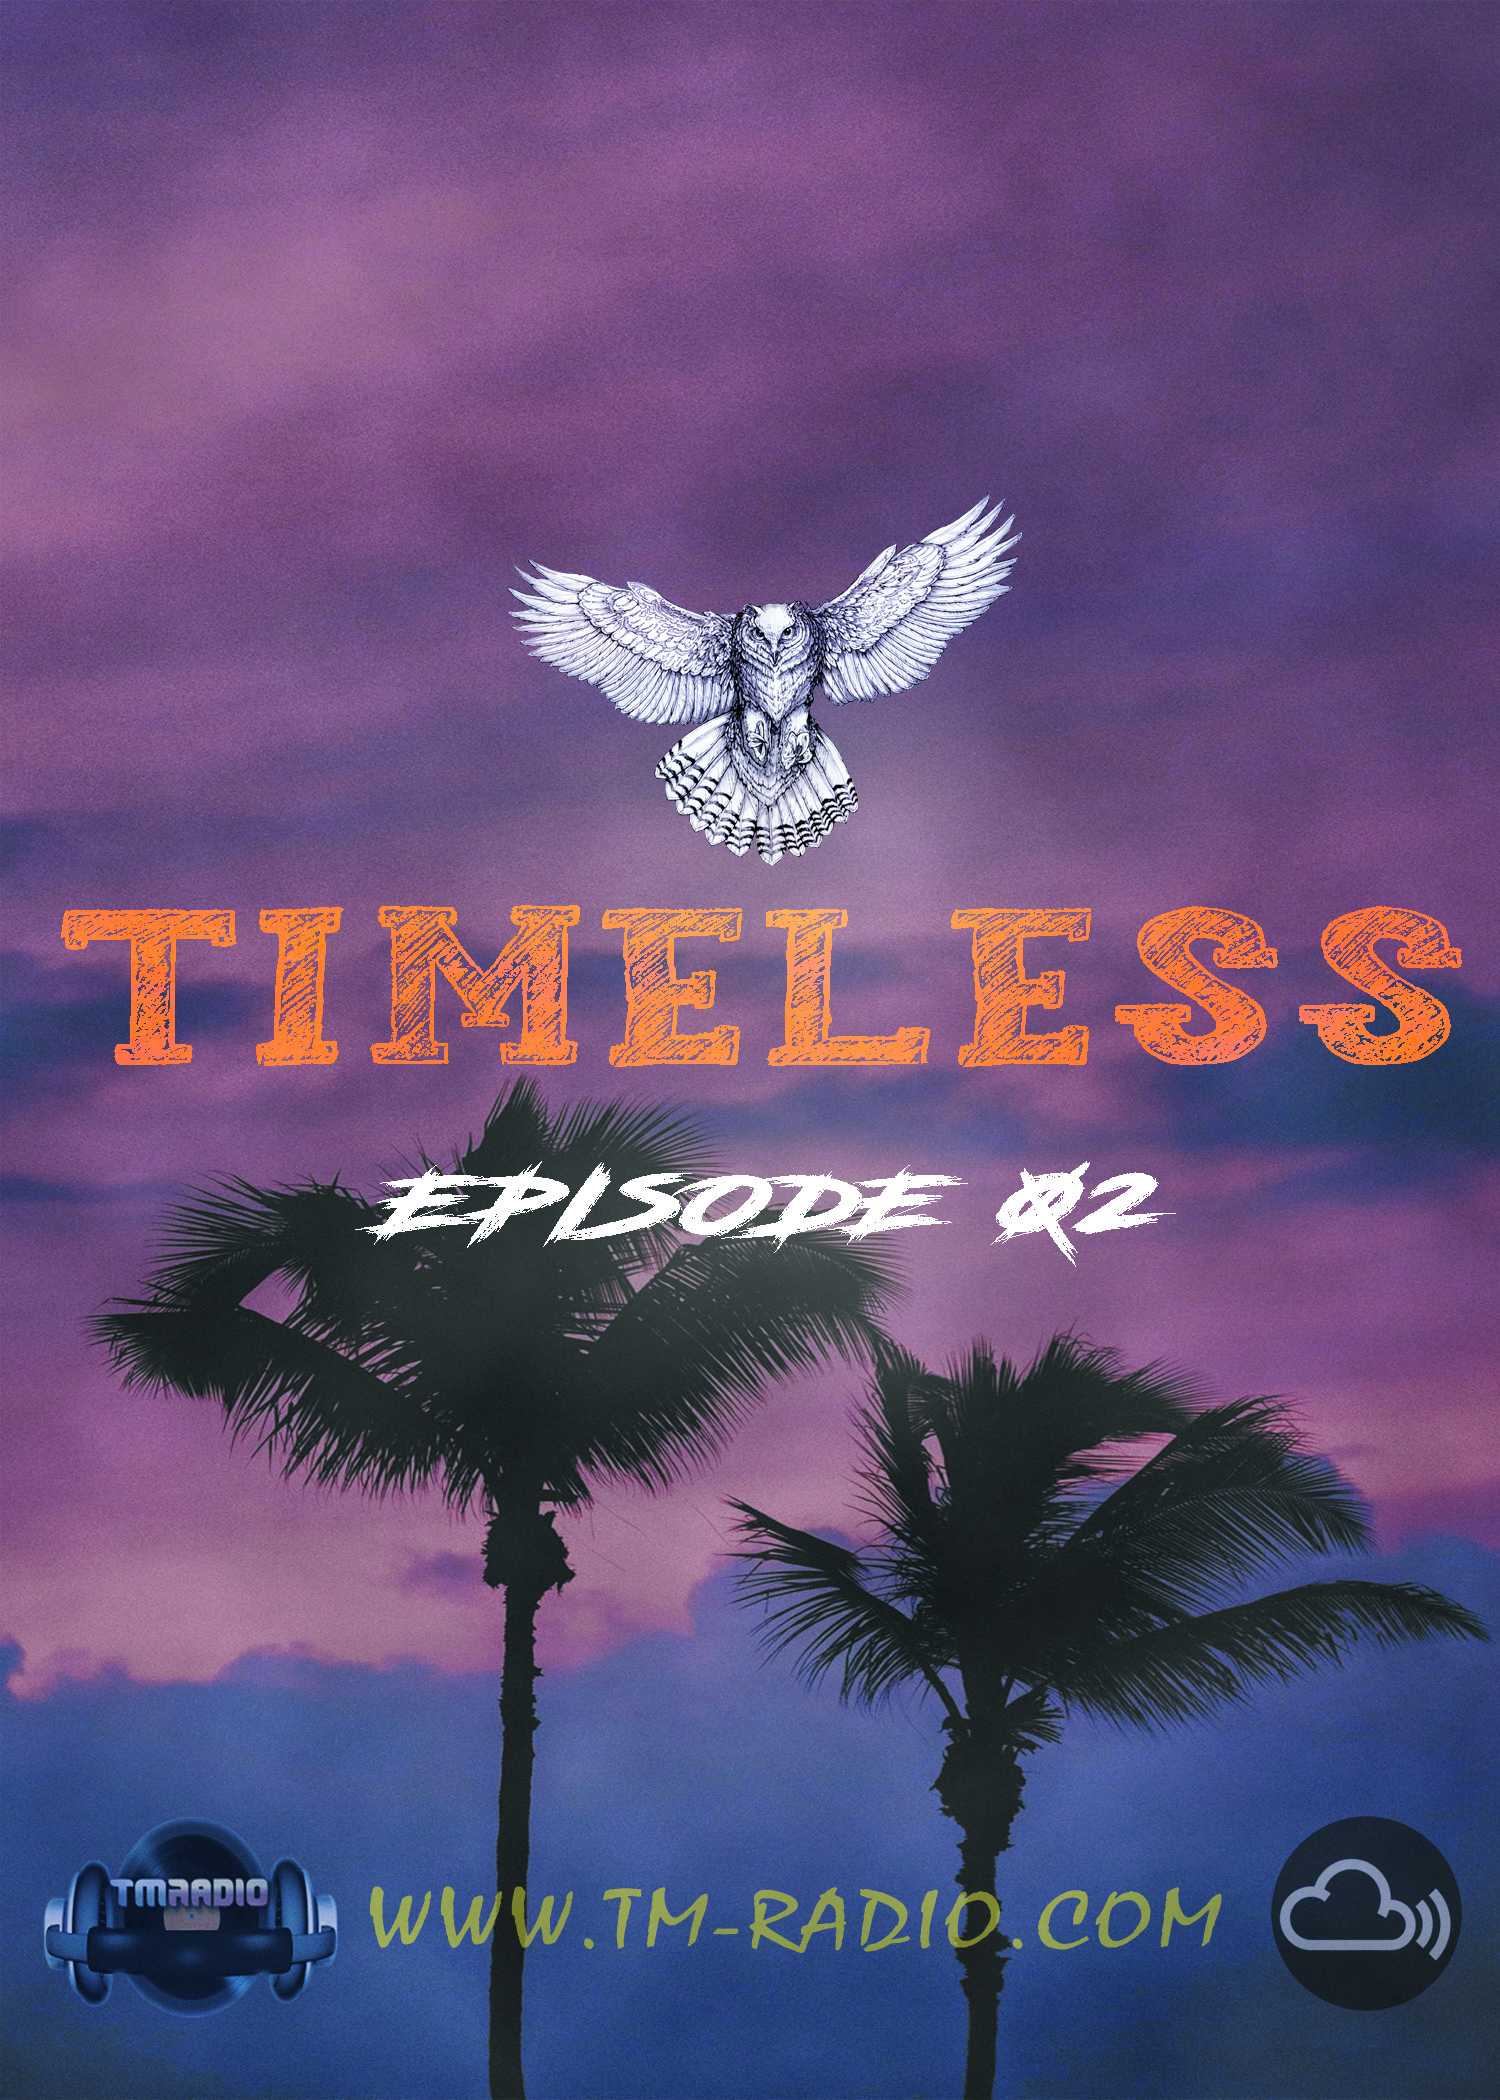 Timeless :: Cris Rosales - Timeless Radioshow Ep. 02 - 05-01-2021 (aired on January 5th) banner logo